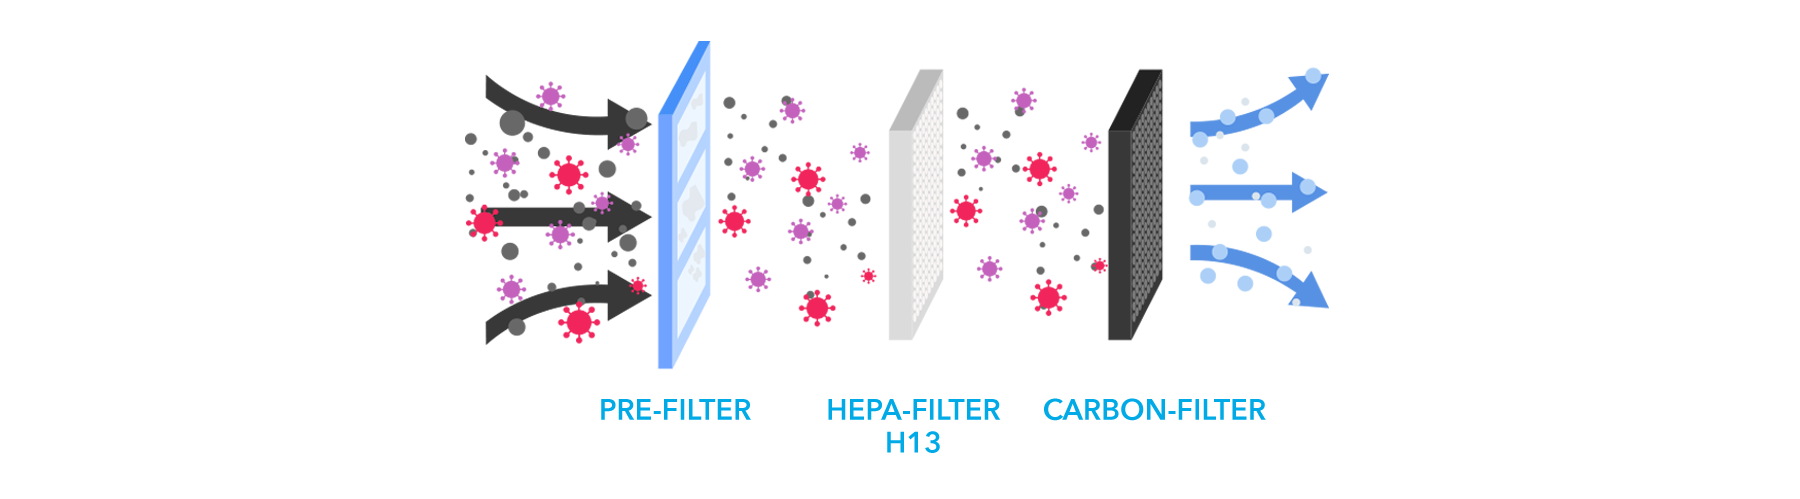 3-Layer-Filter-System